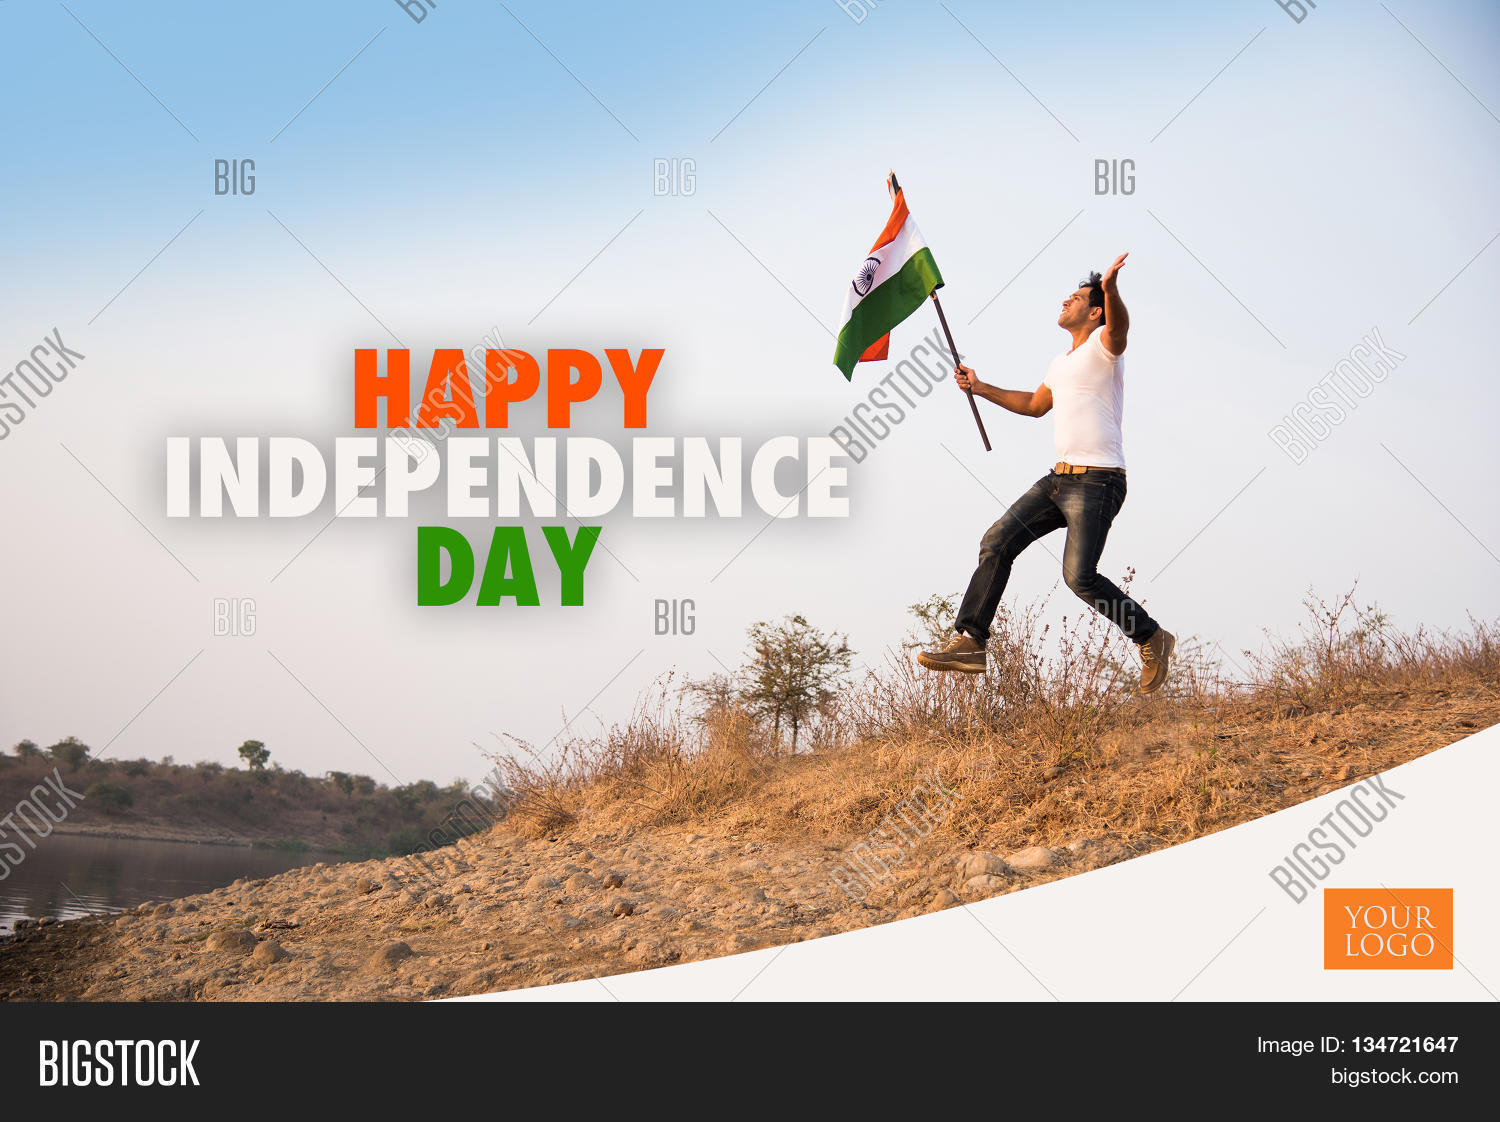 Independence day india image photo free trial bigstock independence day of india greeting card happy independence day greeting card greeting card of m4hsunfo